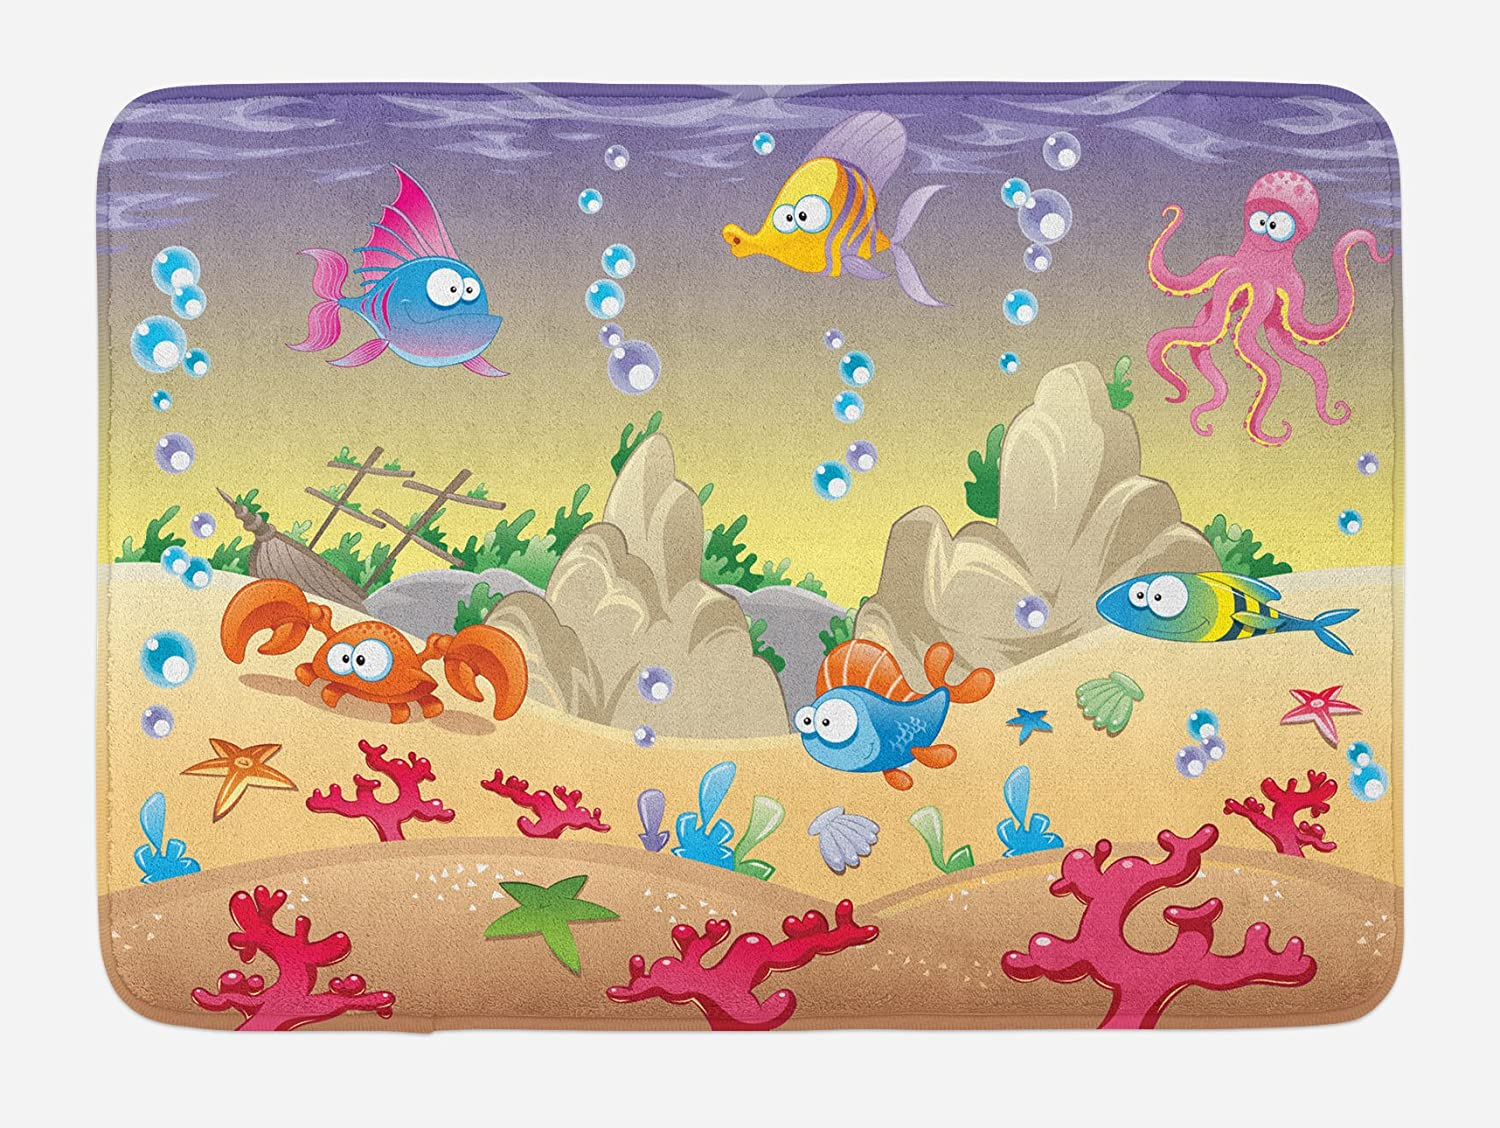 Ambesonne Underwater Bath Mat, Cartoon Design Funny Sea Animals Fishes Sunken Ship Coral Reef and Bubbles, Plush Bathroom Decor Mat with Non Slip Backing, 29.5